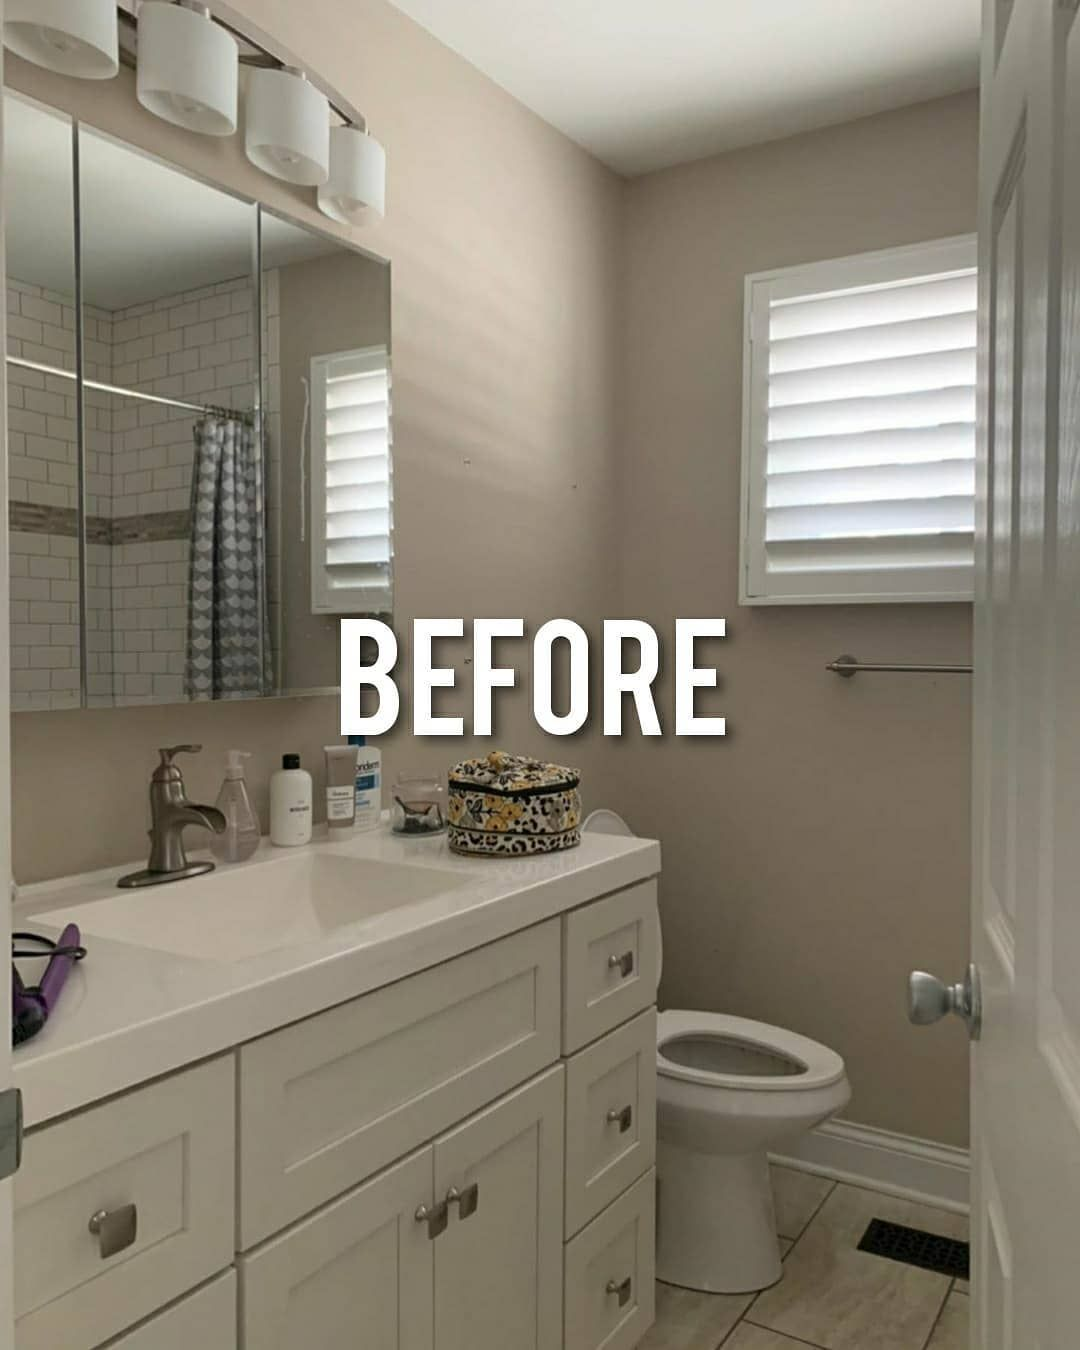 Before After Design On Instagram Swipe Check Out This Bathroom Transformation By Ourwelldesign In 2020 Gorgeous Bathroom Bathroom Makeover Bathroom Repair